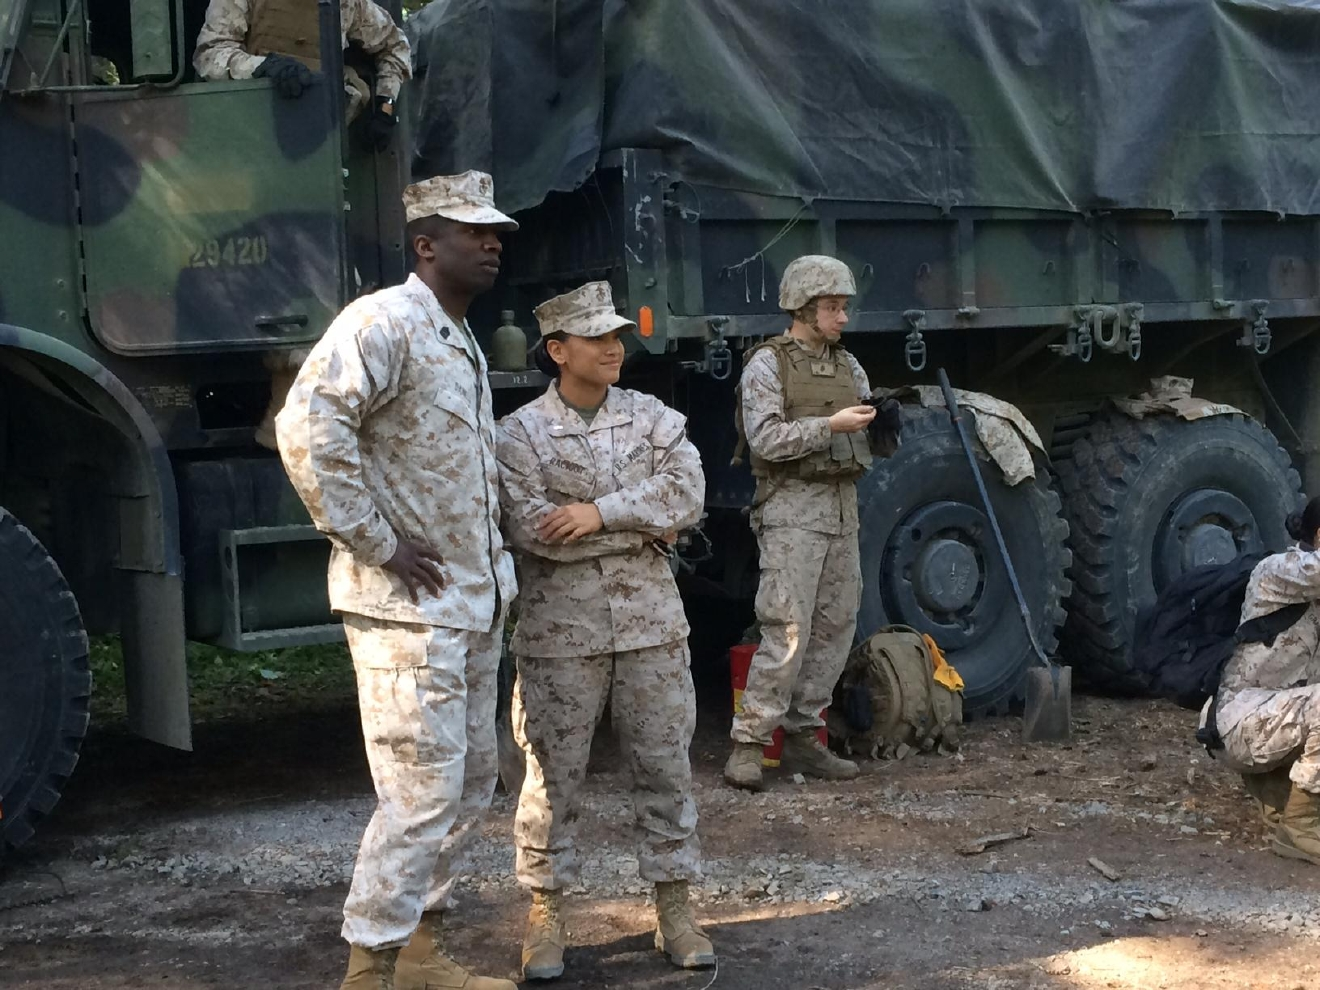 Marines from a combat engineering unit based in Springfield are in the woods near Westfir helping the Willamette National Forest this month. (SBG)